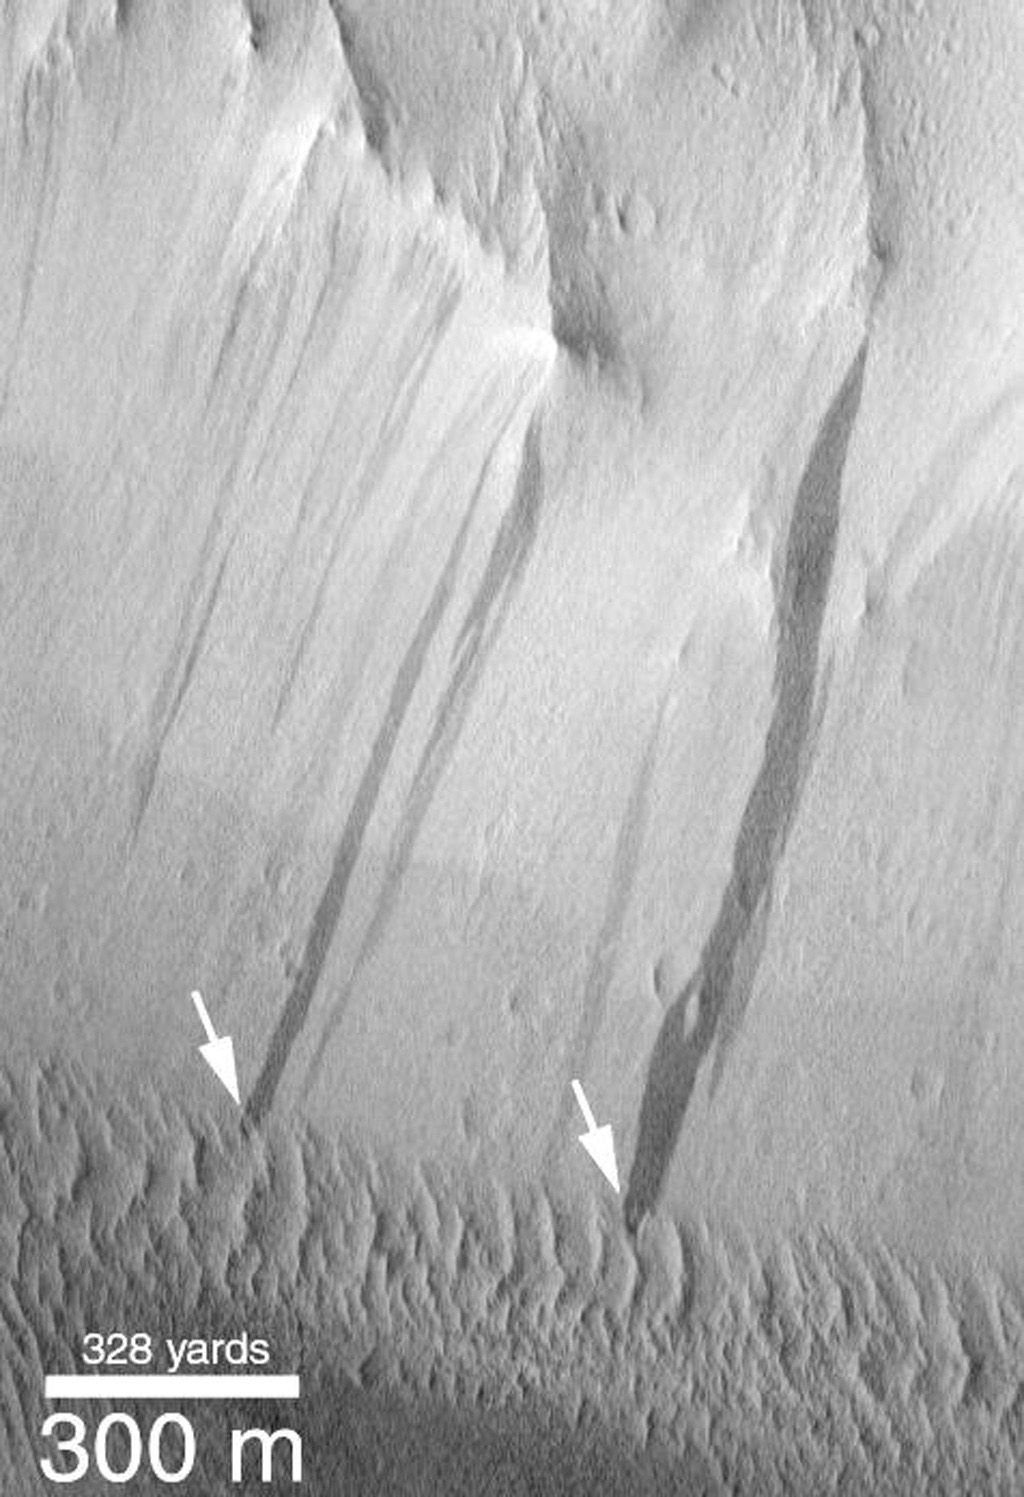 NASA's Mars Global Surveyor shows small windblown dunes at the base of a slope in Lycus Sulci on Mars that have been over-ridden by more recent dark streaks (arrows).